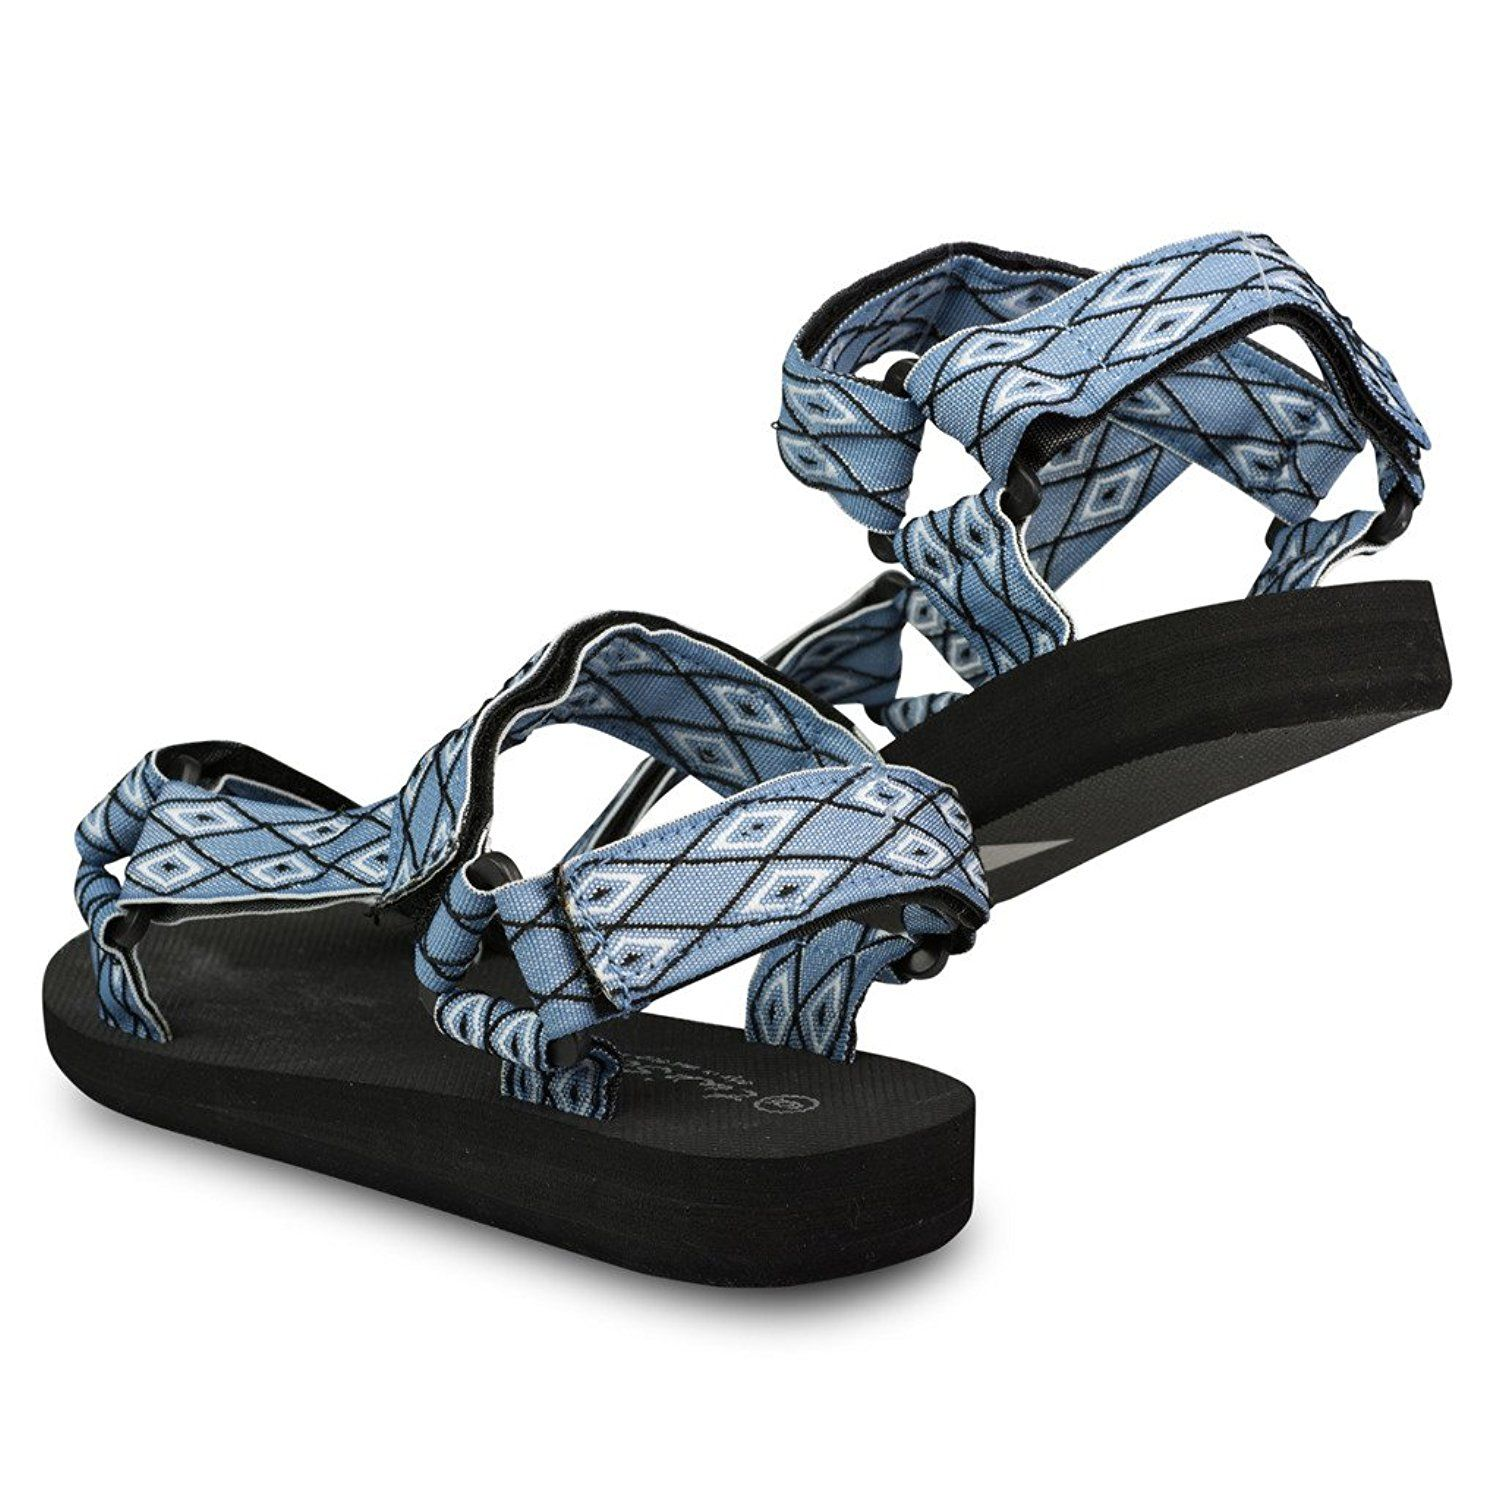 202e9417a8b2b Twisted Women s TELLY Velcro Strap Sandal    Check out this great product.  Find this Pin and more on Womens Sandals and Flip Flops ...